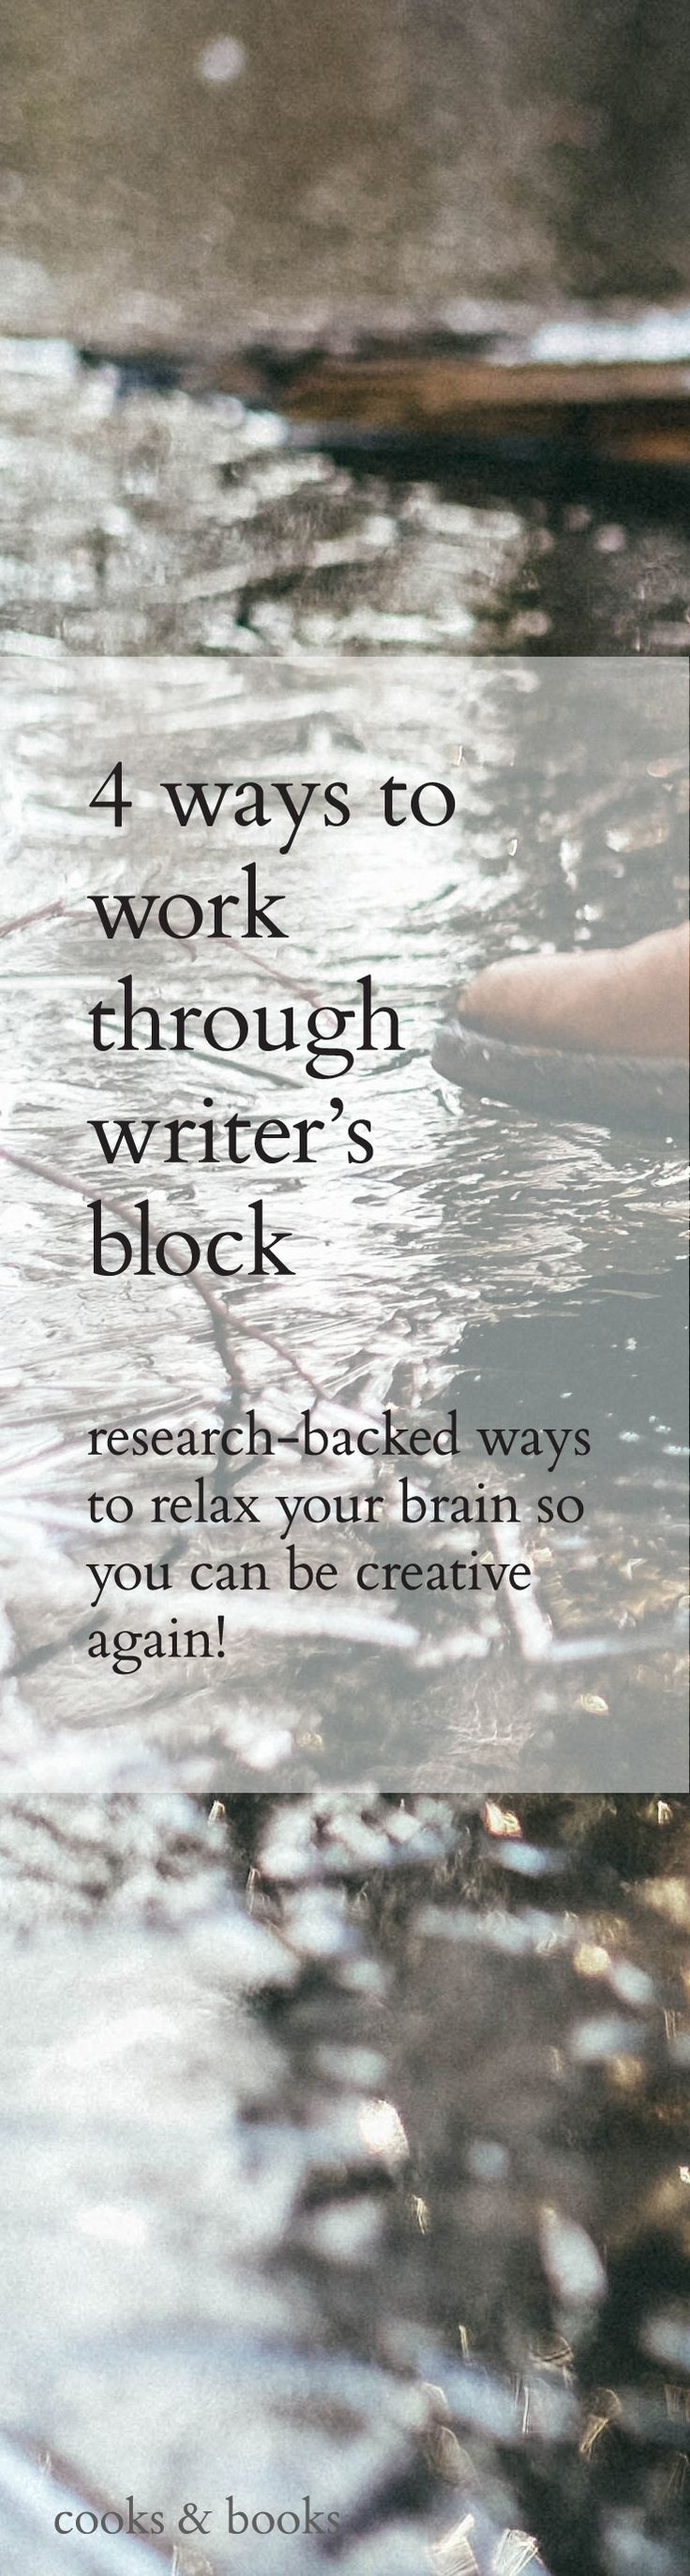 4 Ways To Work Through Writer's Block | Writer's block happens to the best of us; what matters is how you deal with it. Click through for 4 ways to get past writer's block writersrelief.com